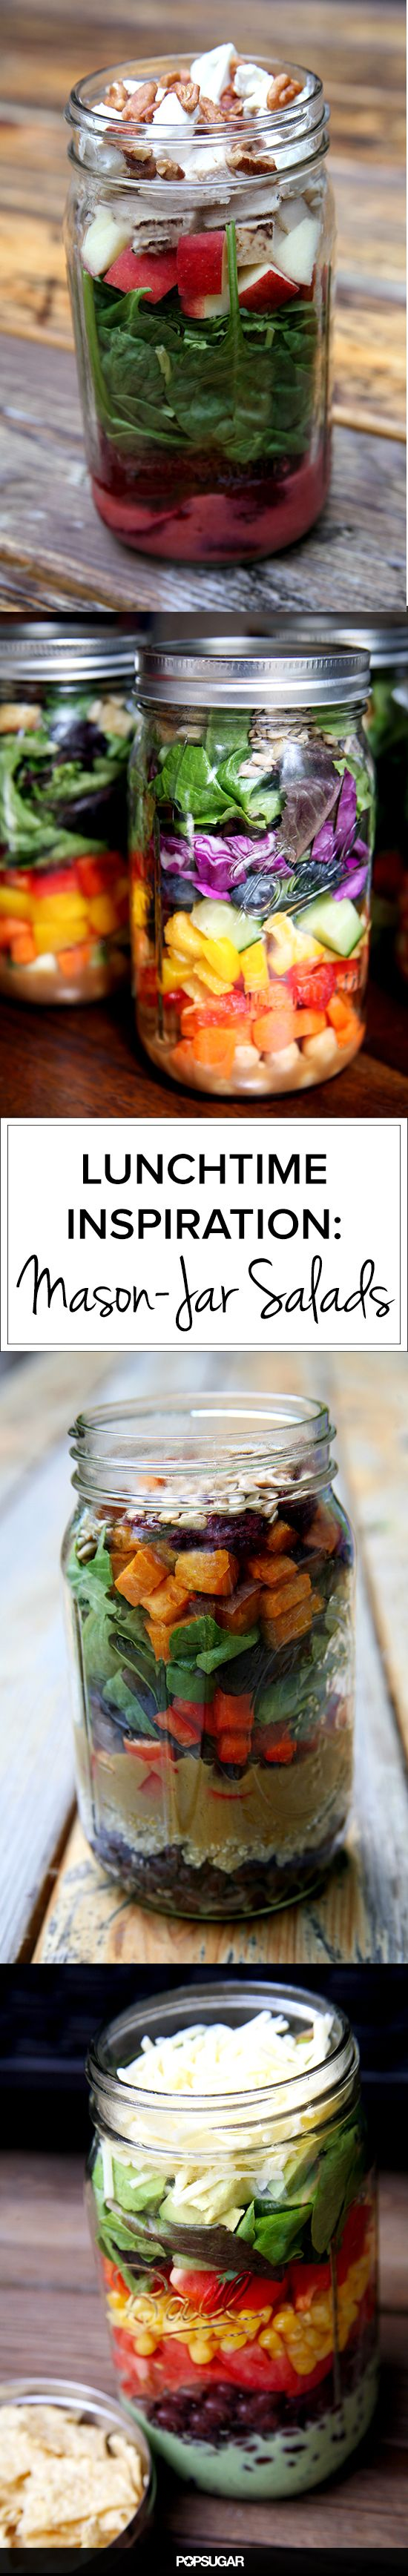 20 Salads in a Jar That Will Make You Want to Eat Healthier...lunch for HUTCH